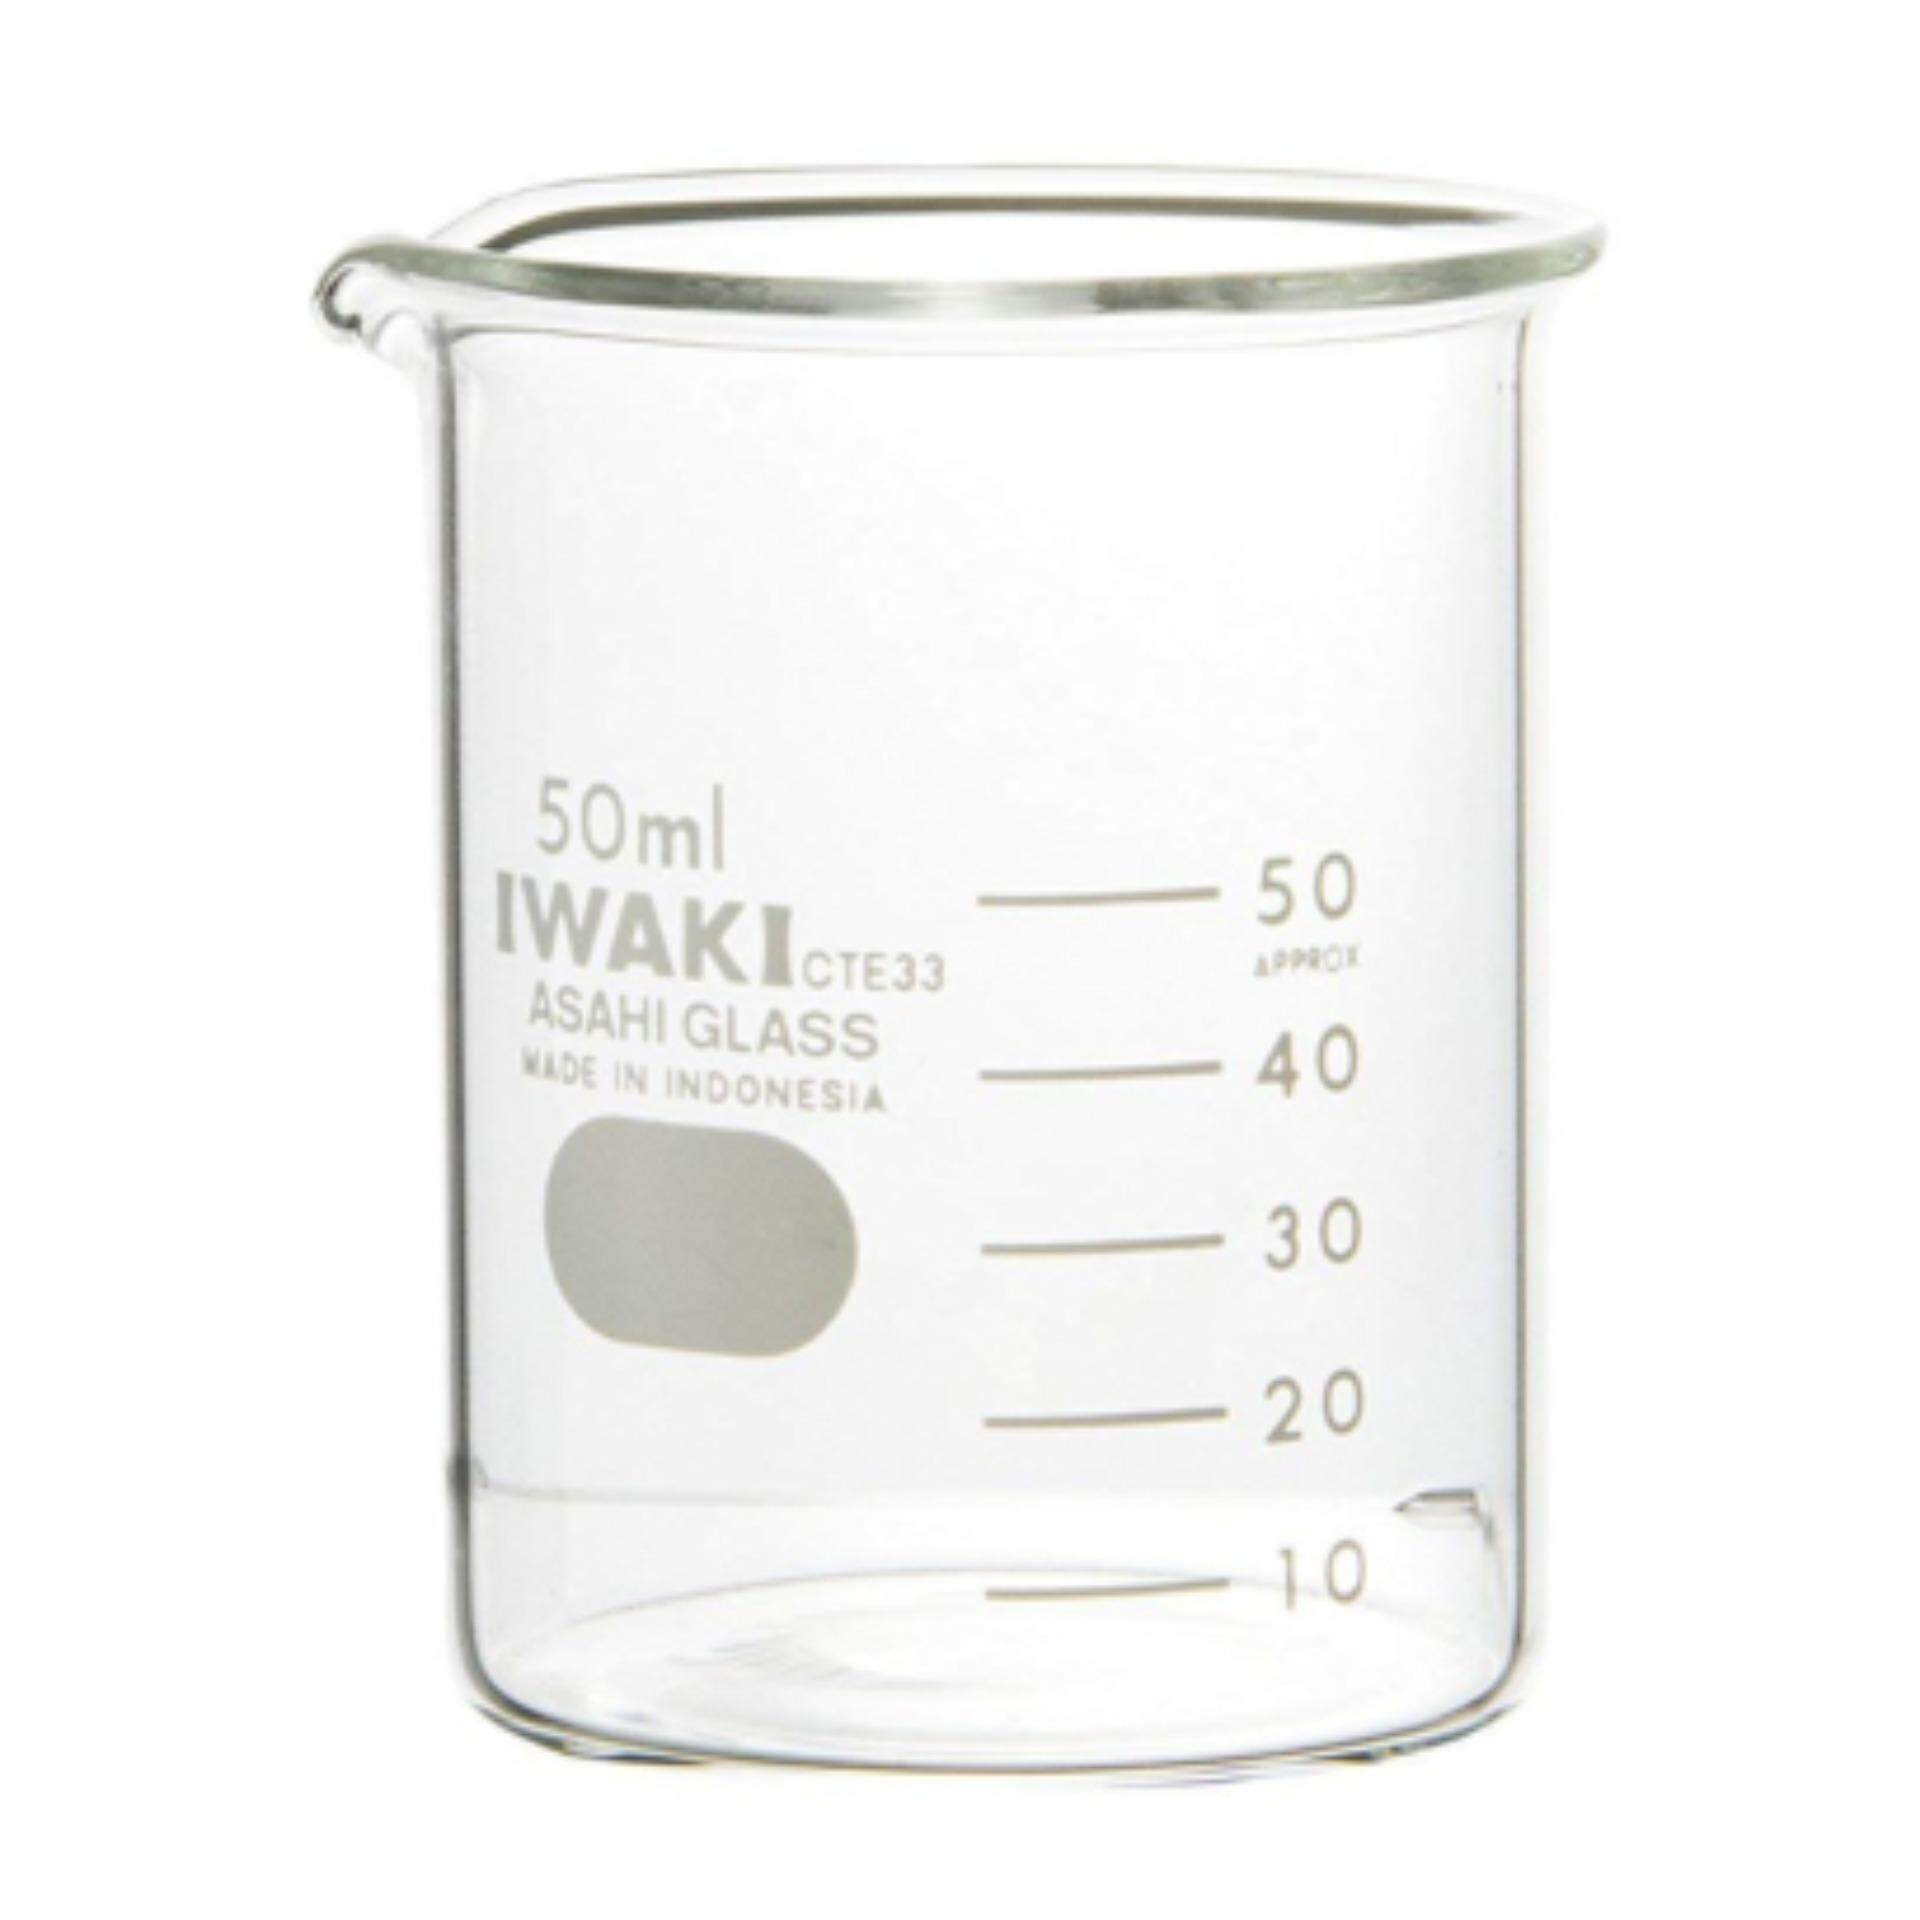 IWAKI Pyrex 50ml Glass Beaker Low Form Laboratory use